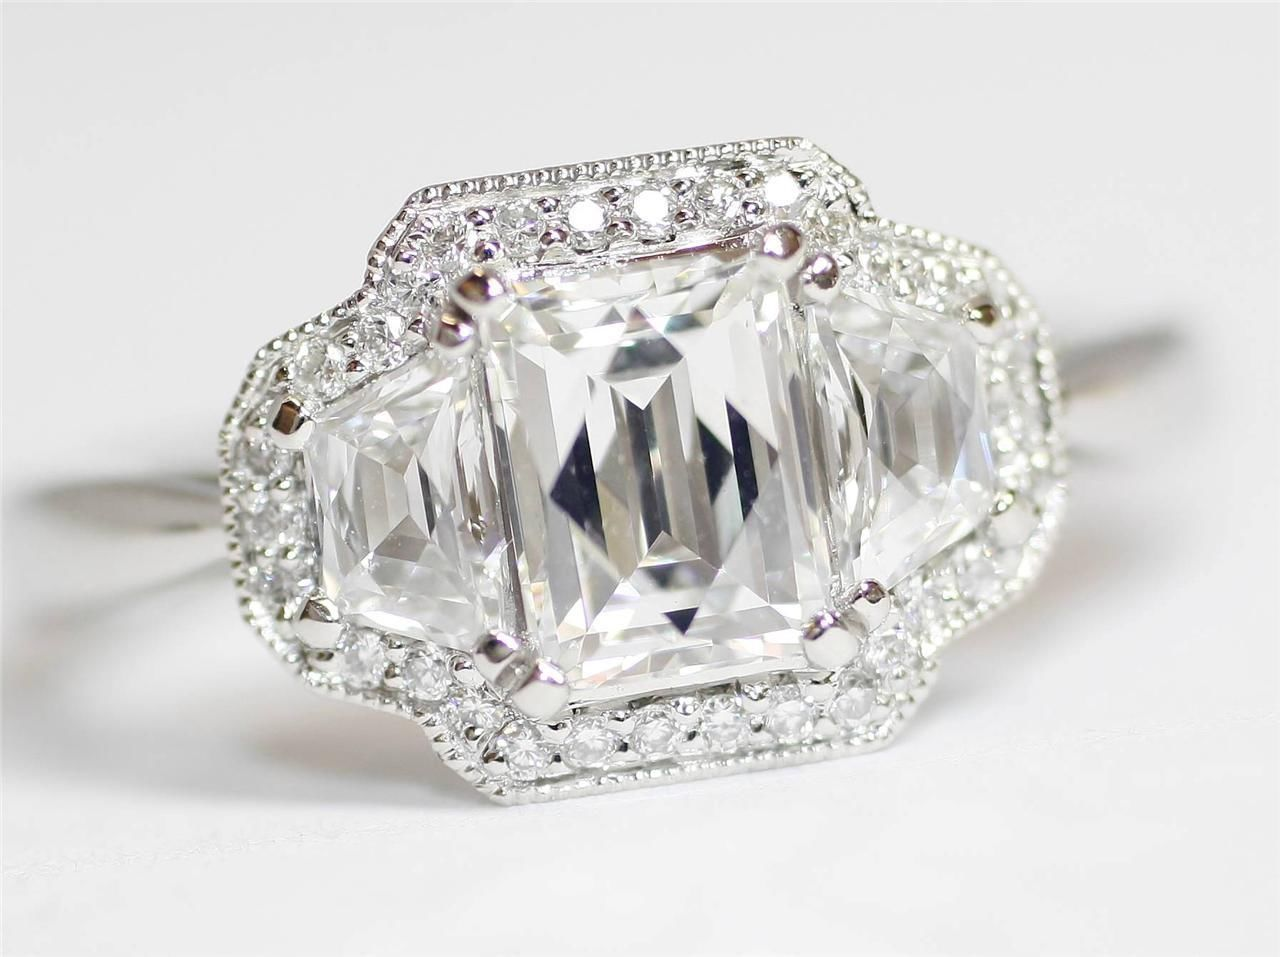 sell a tycoon diamond ring - Sell My Wedding Ring